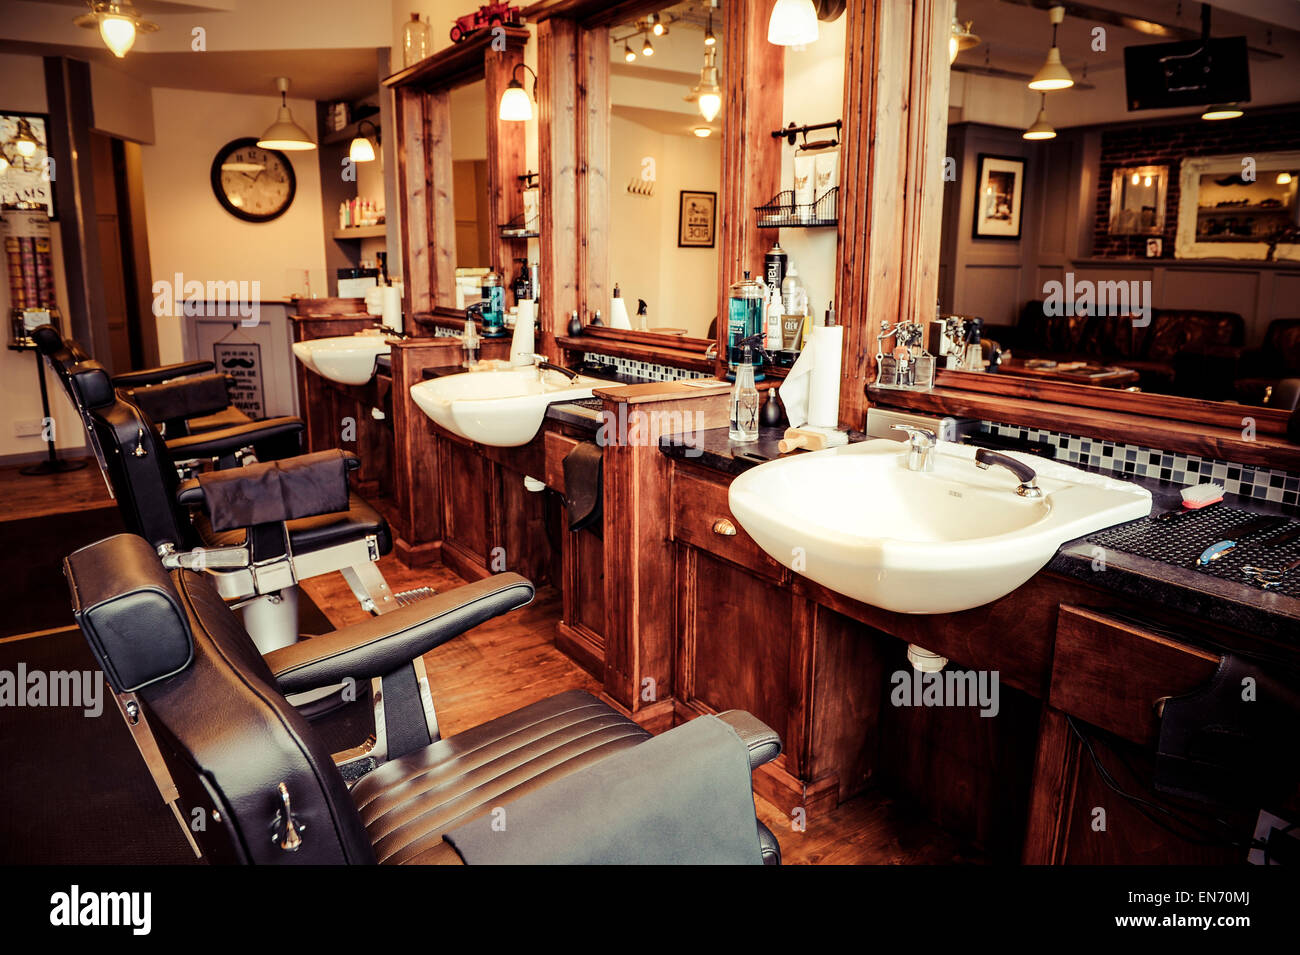 Men 39 s barber shop retro styled interior design stock photo royalty free image 81903490 alamy - Barber shop interior ...